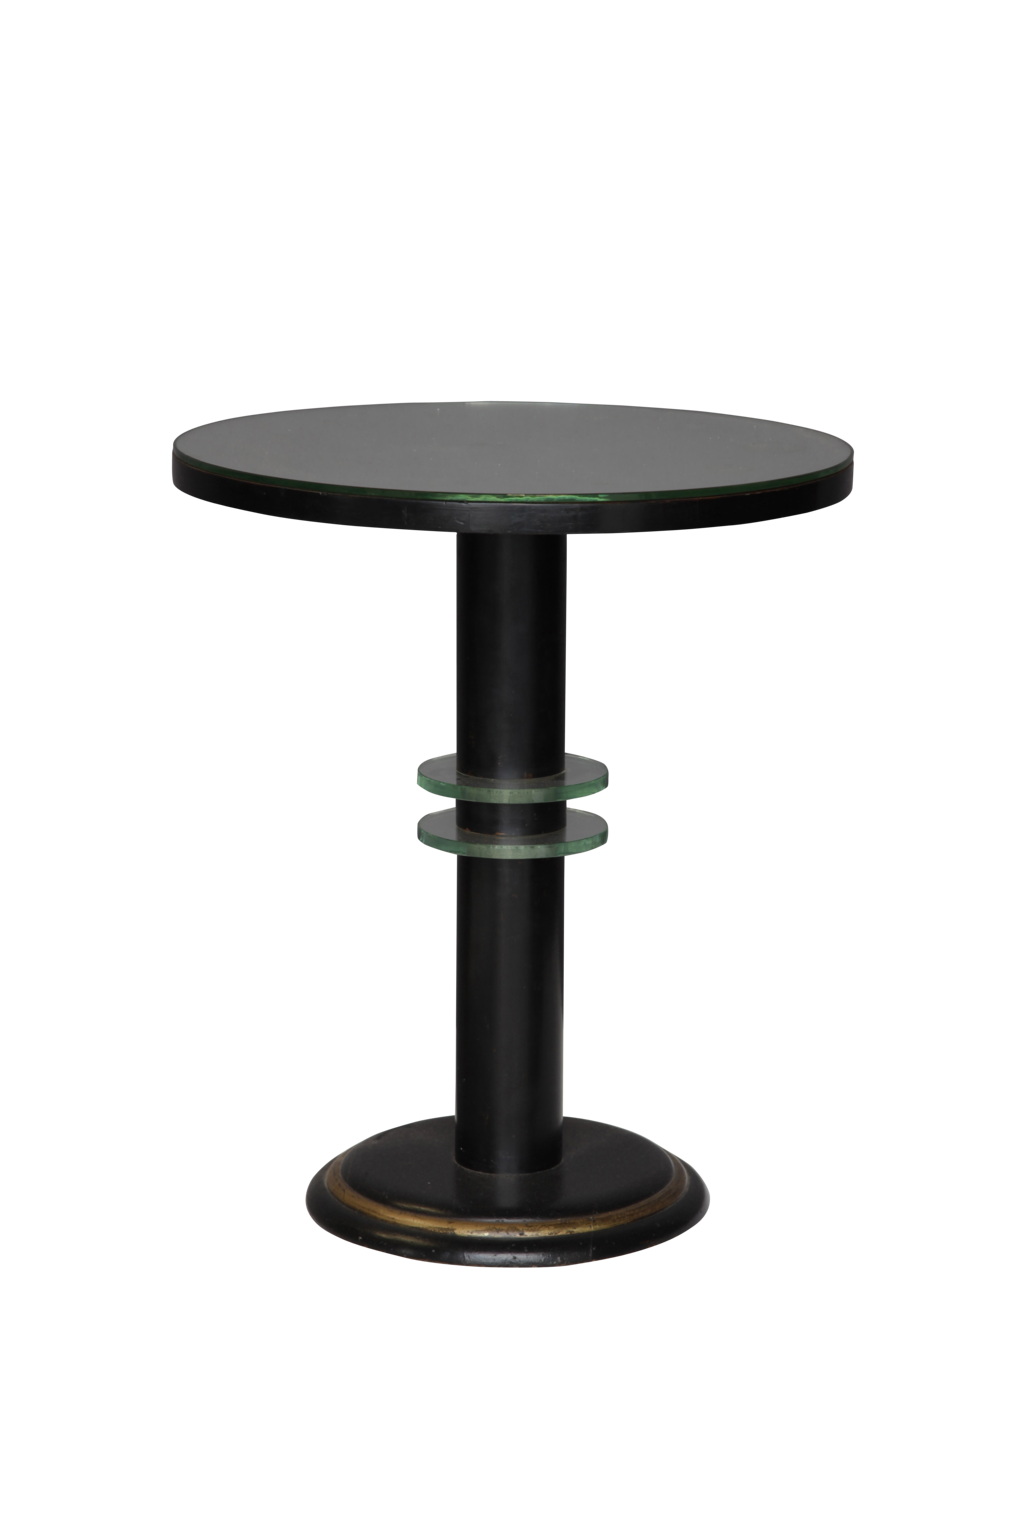 mirrored art deco ebonised round table decorative collective. Black Bedroom Furniture Sets. Home Design Ideas